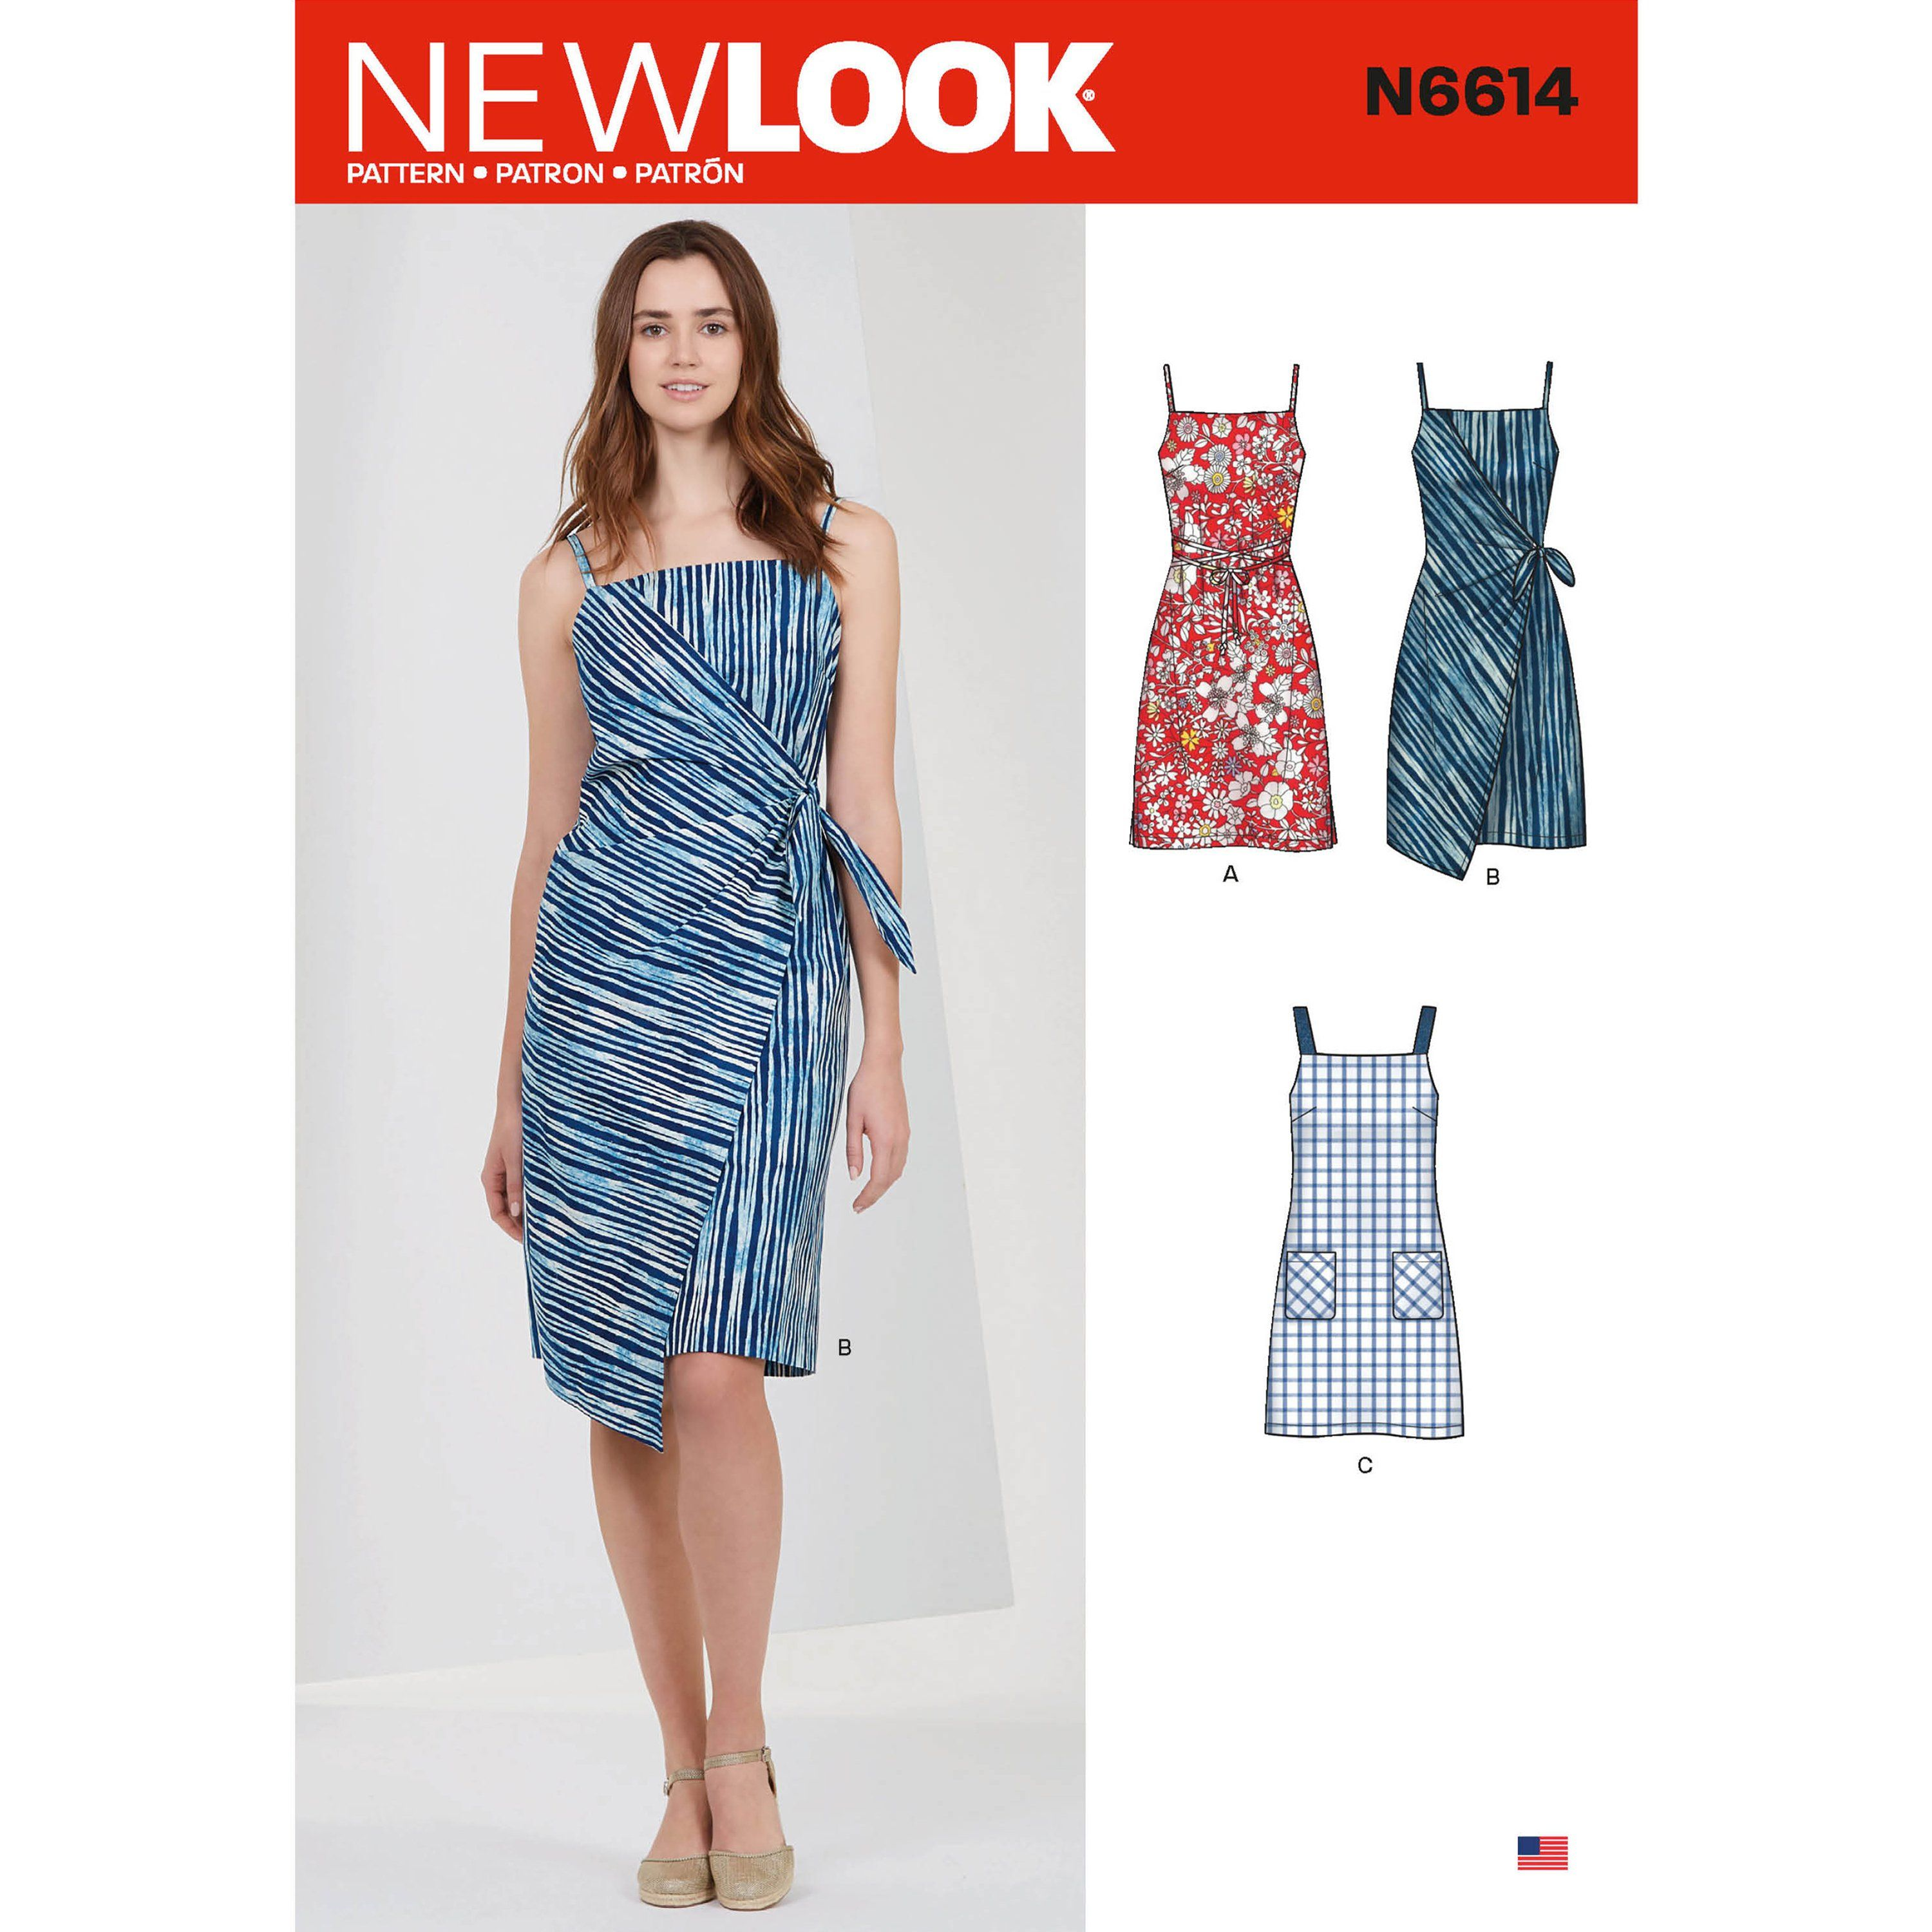 New Look 6614 Sewing Pattern New Look Dress Patterns New Look Dresses Maternity Sewing Patterns [ 3000 x 3000 Pixel ]